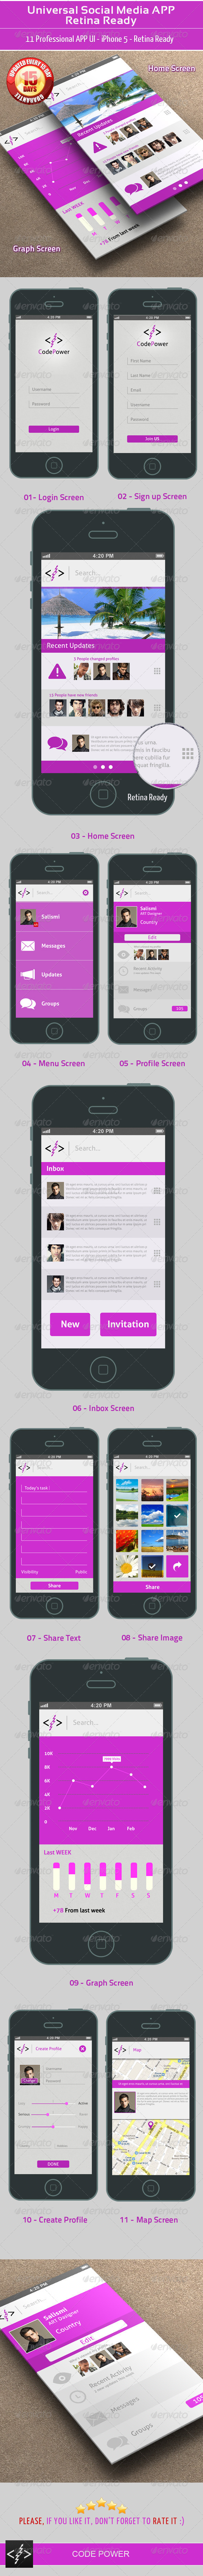 GraphicRiver Universal Social Media UI APP Retina Ready 4657232